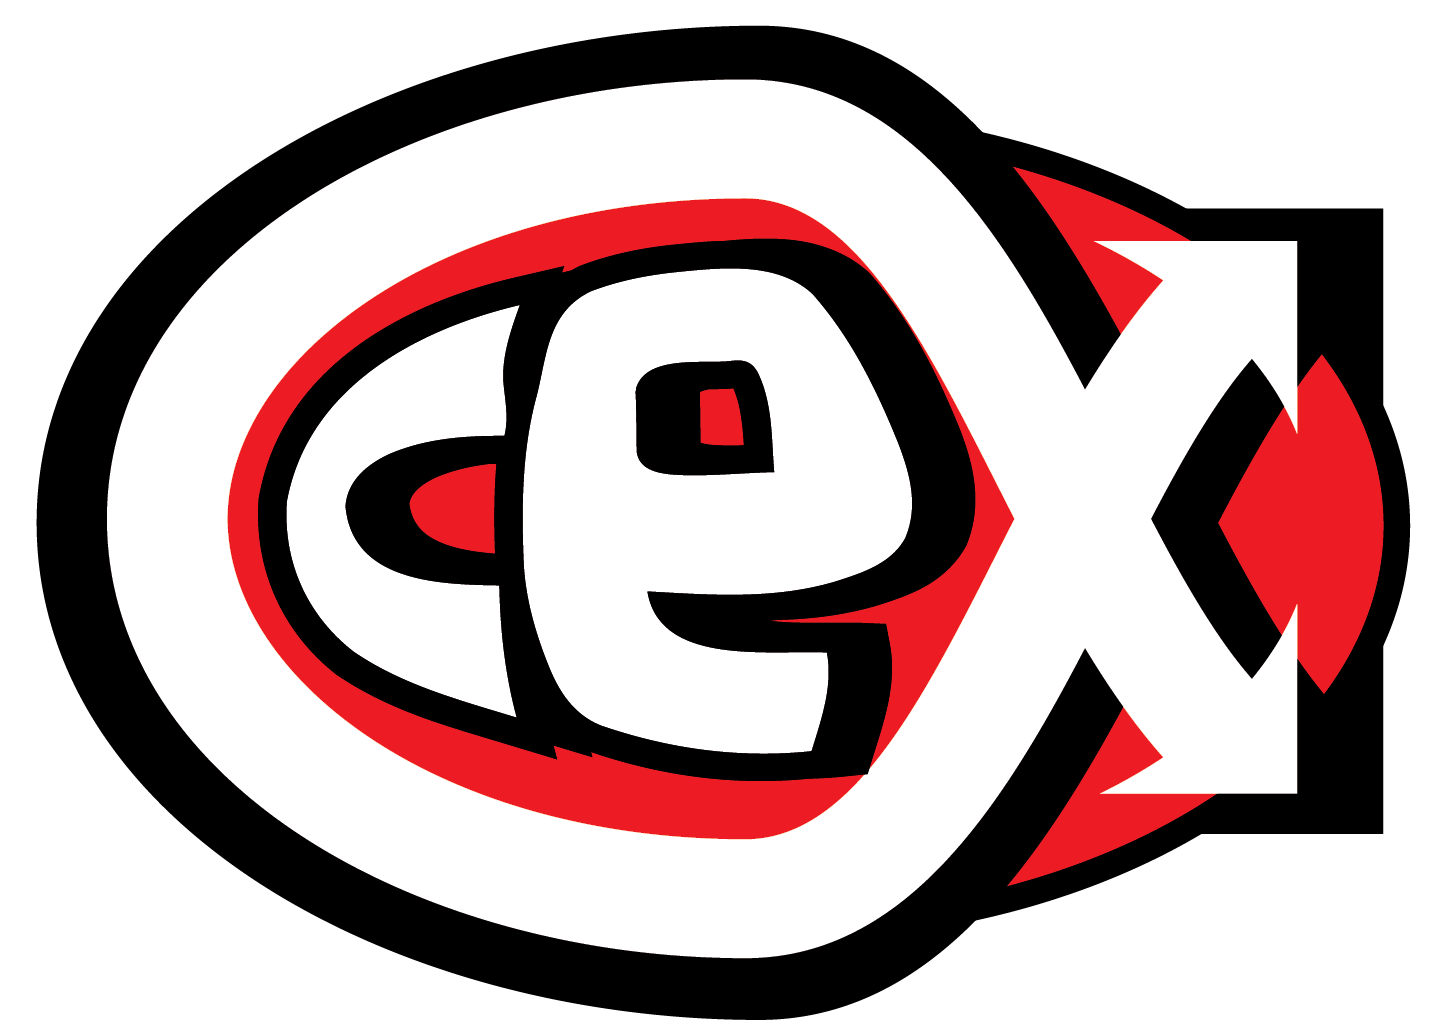 CeX Logo Rich Black CMYK 01